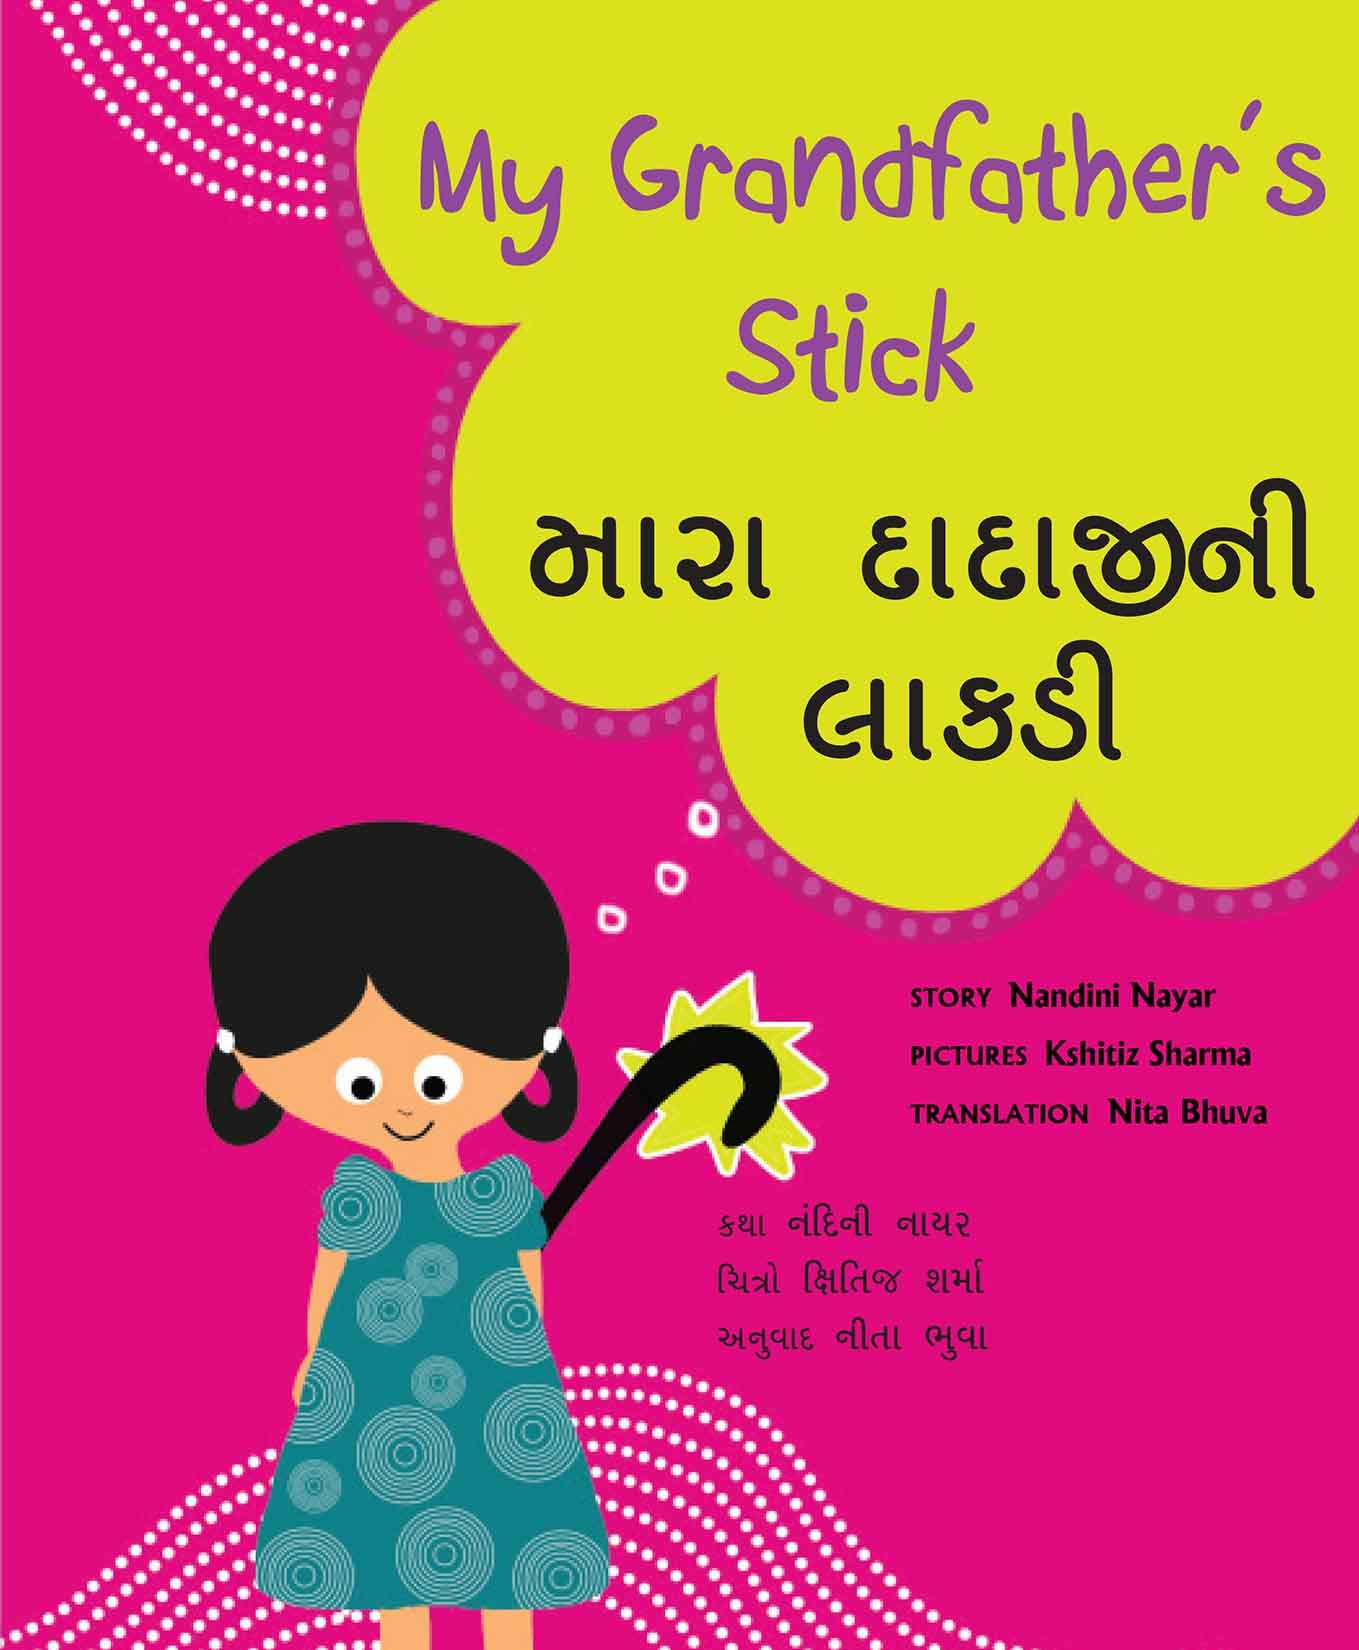 My Grandfather's Stick/Mara Dadajini Laakdi (English-Gujarati)